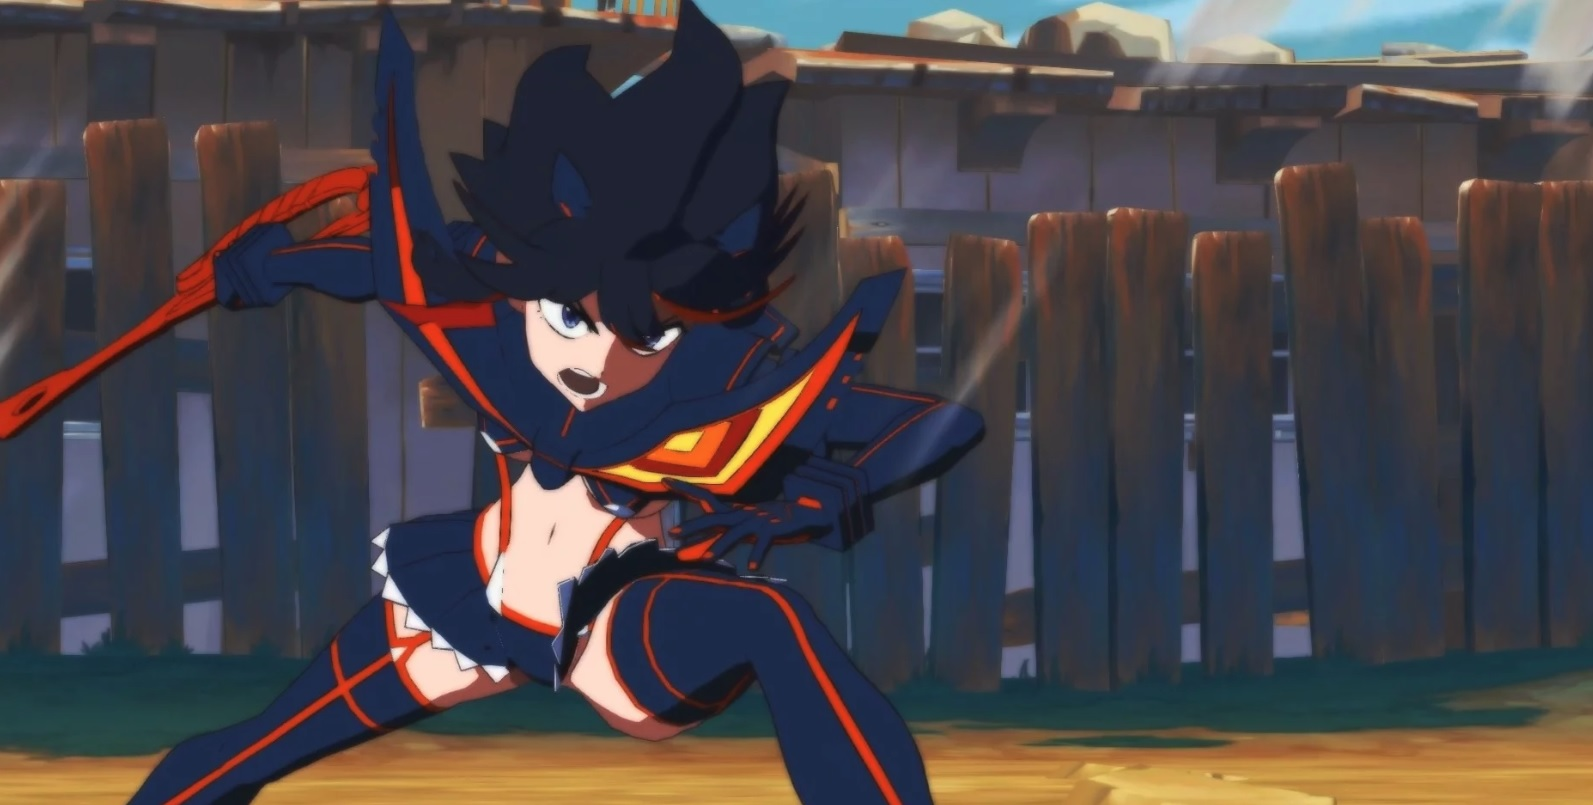 (Update) The Kill la Kill game is getting a European release later this year screenshot